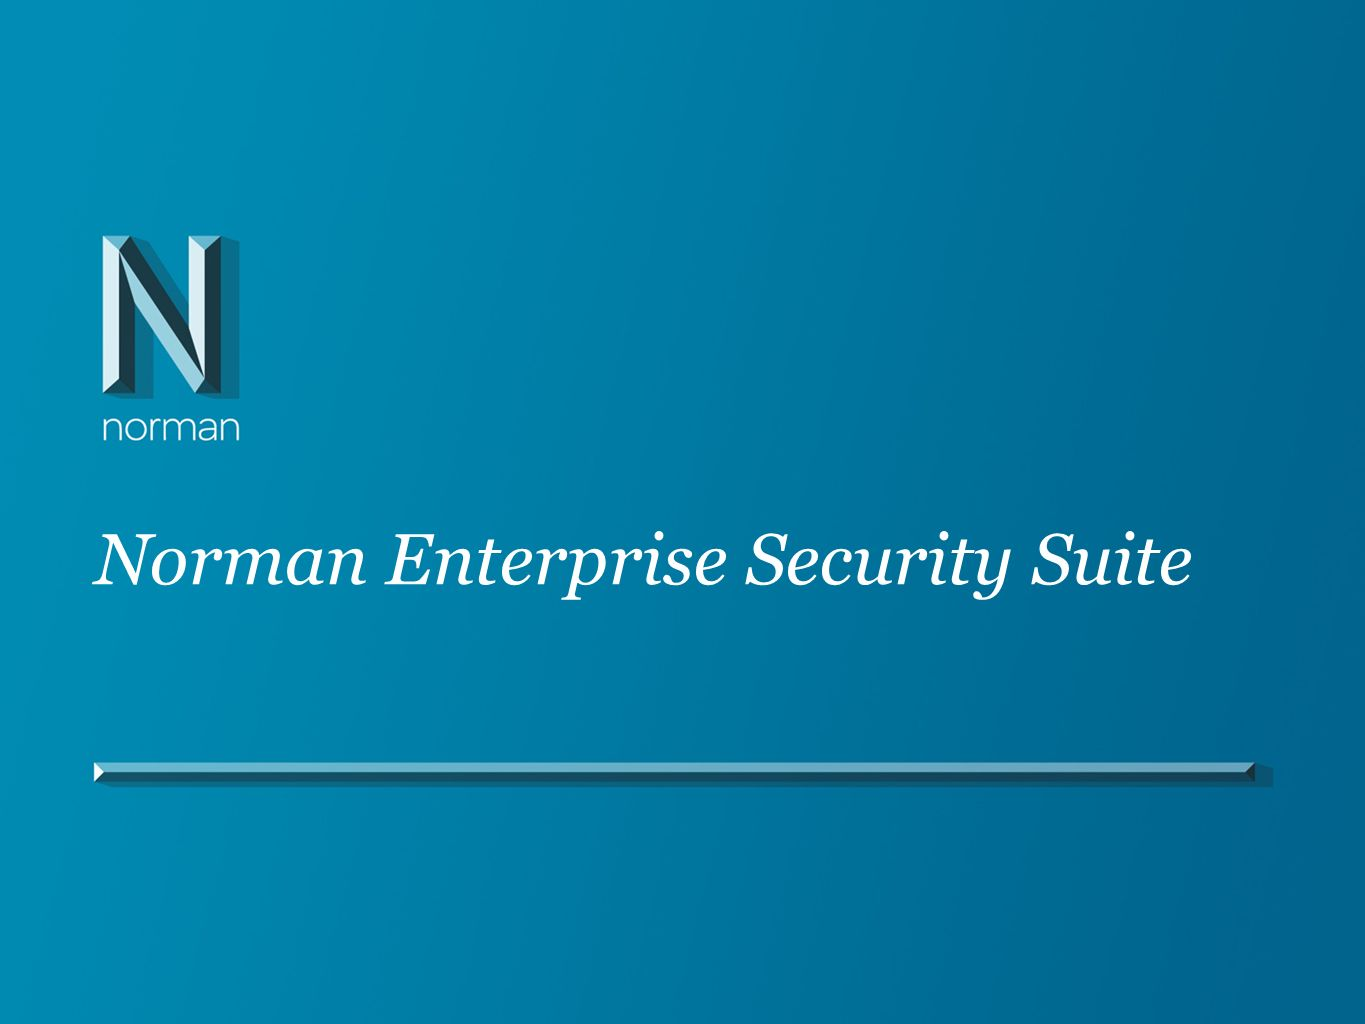 Norman Enterprise Security Suite